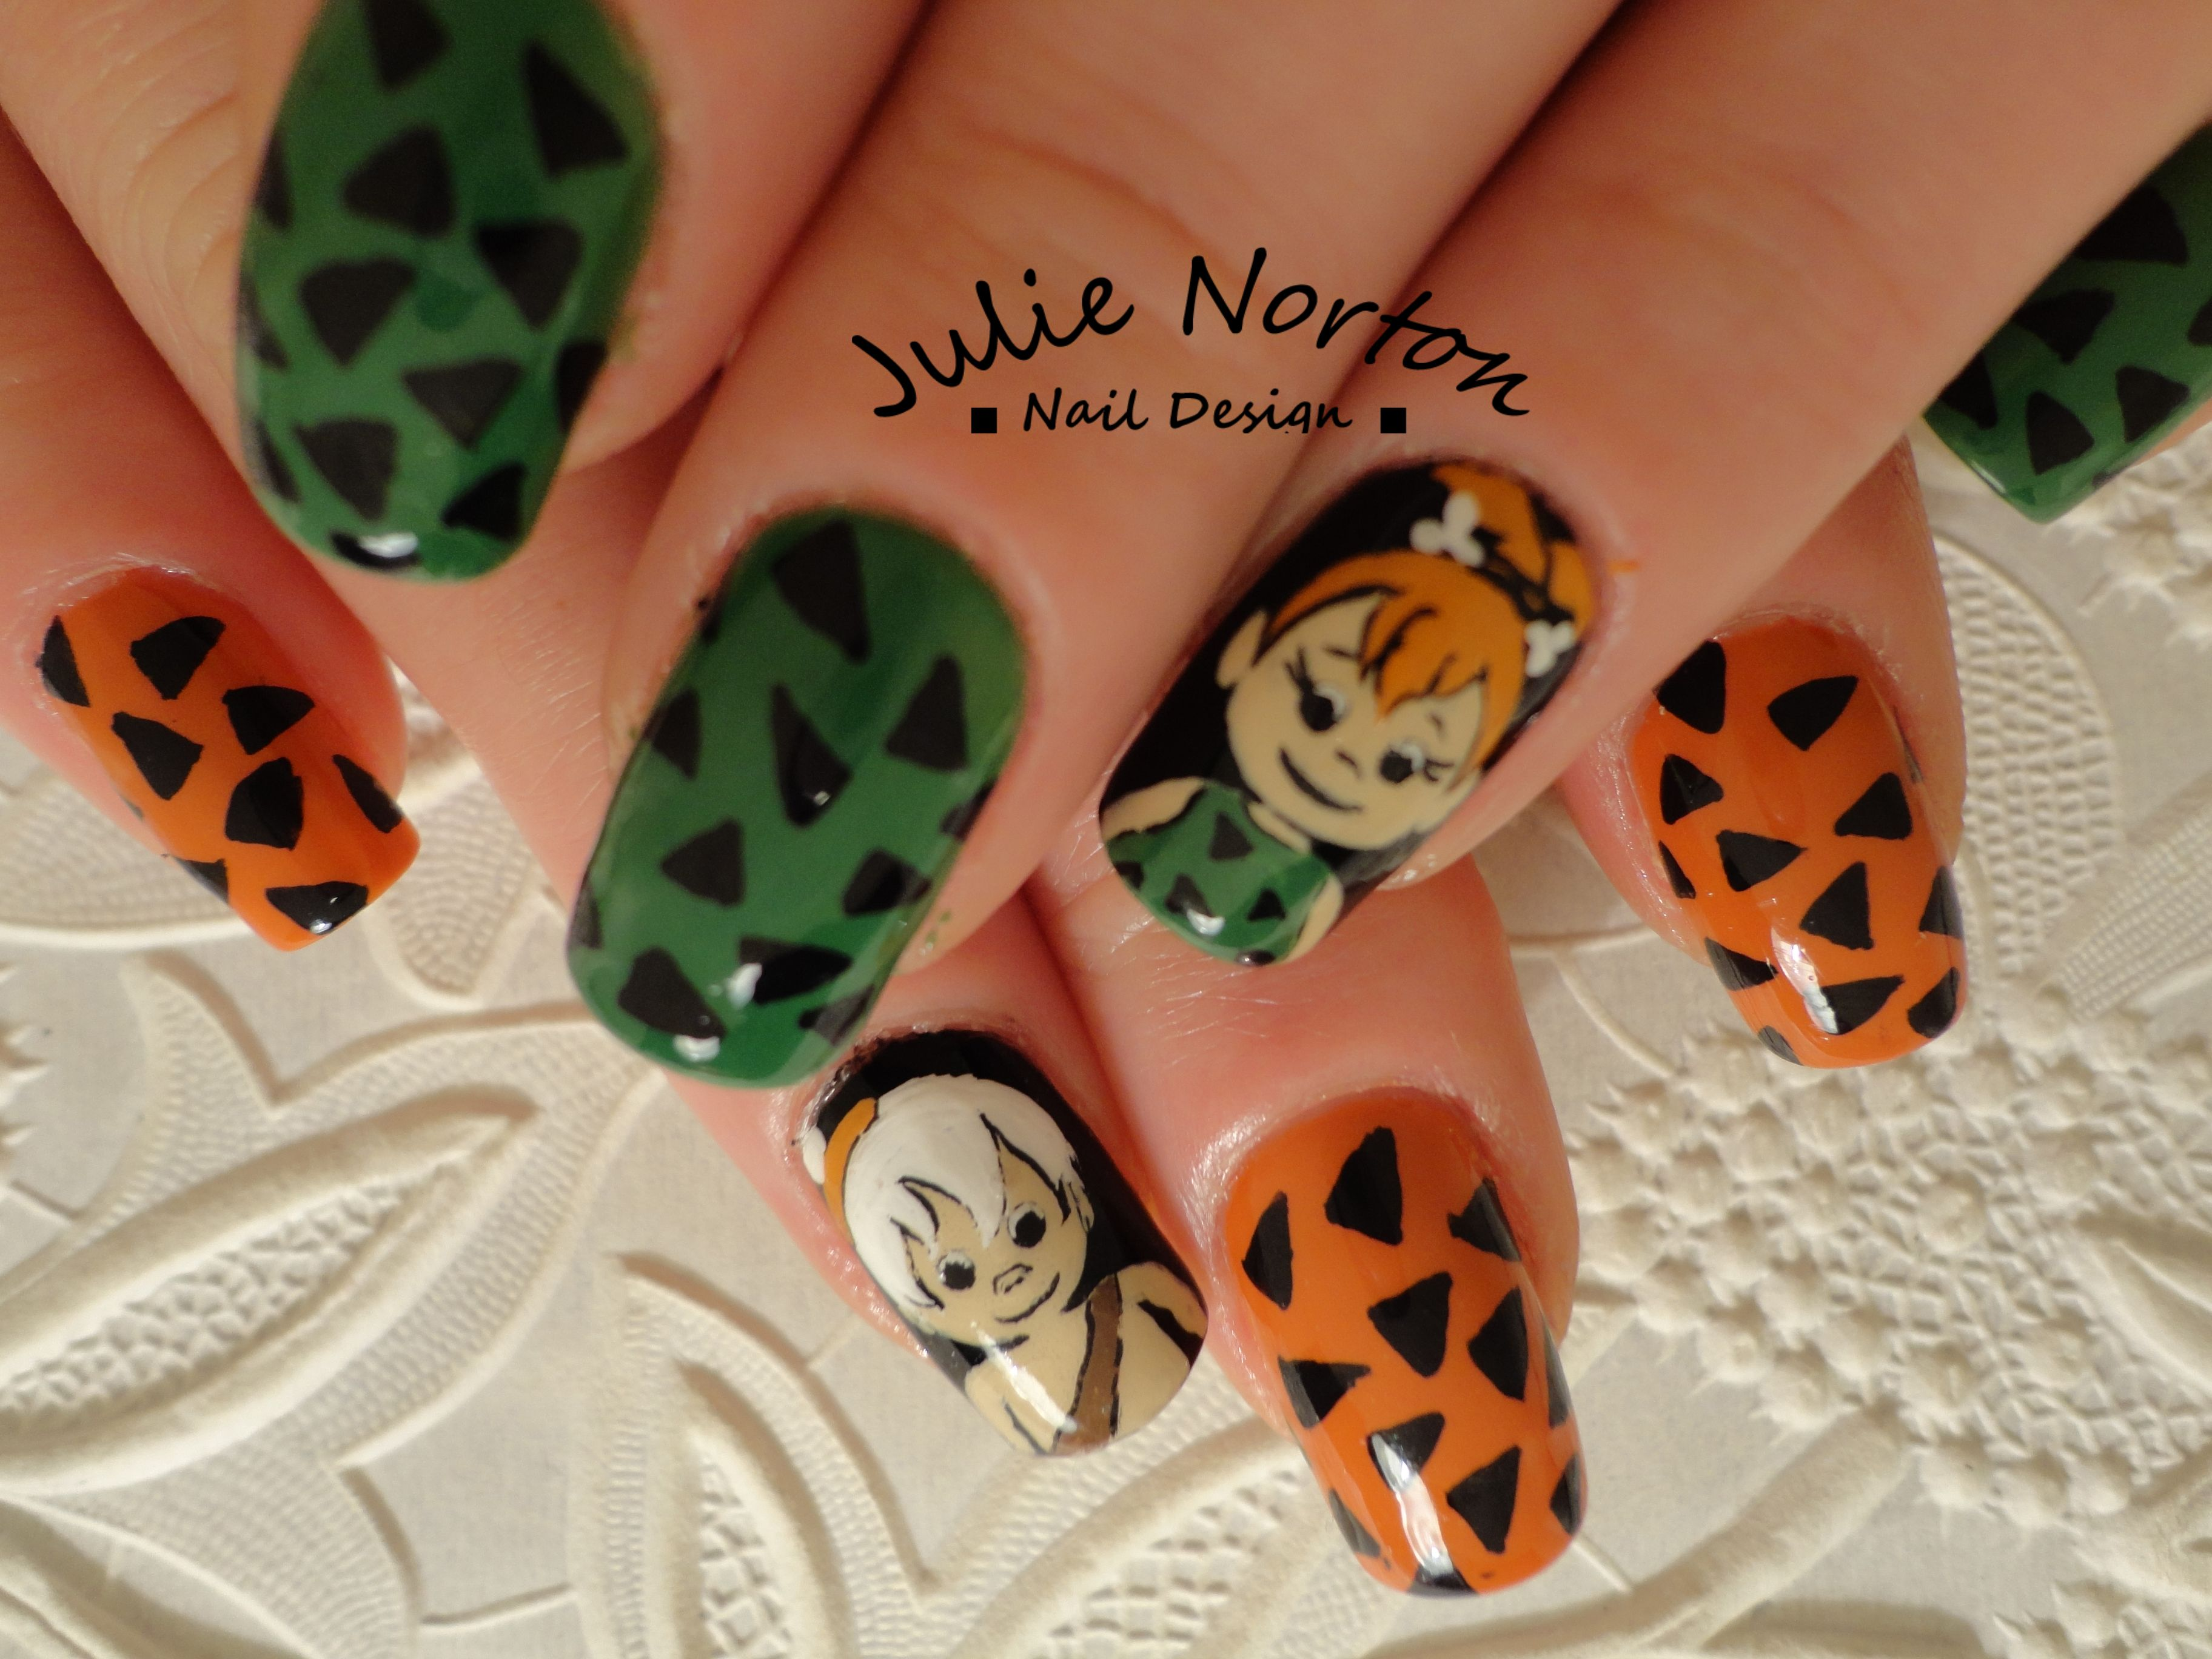 Flintstones - Pebbles And Bam Bam Nails | Nails...Patterns & Designs ...